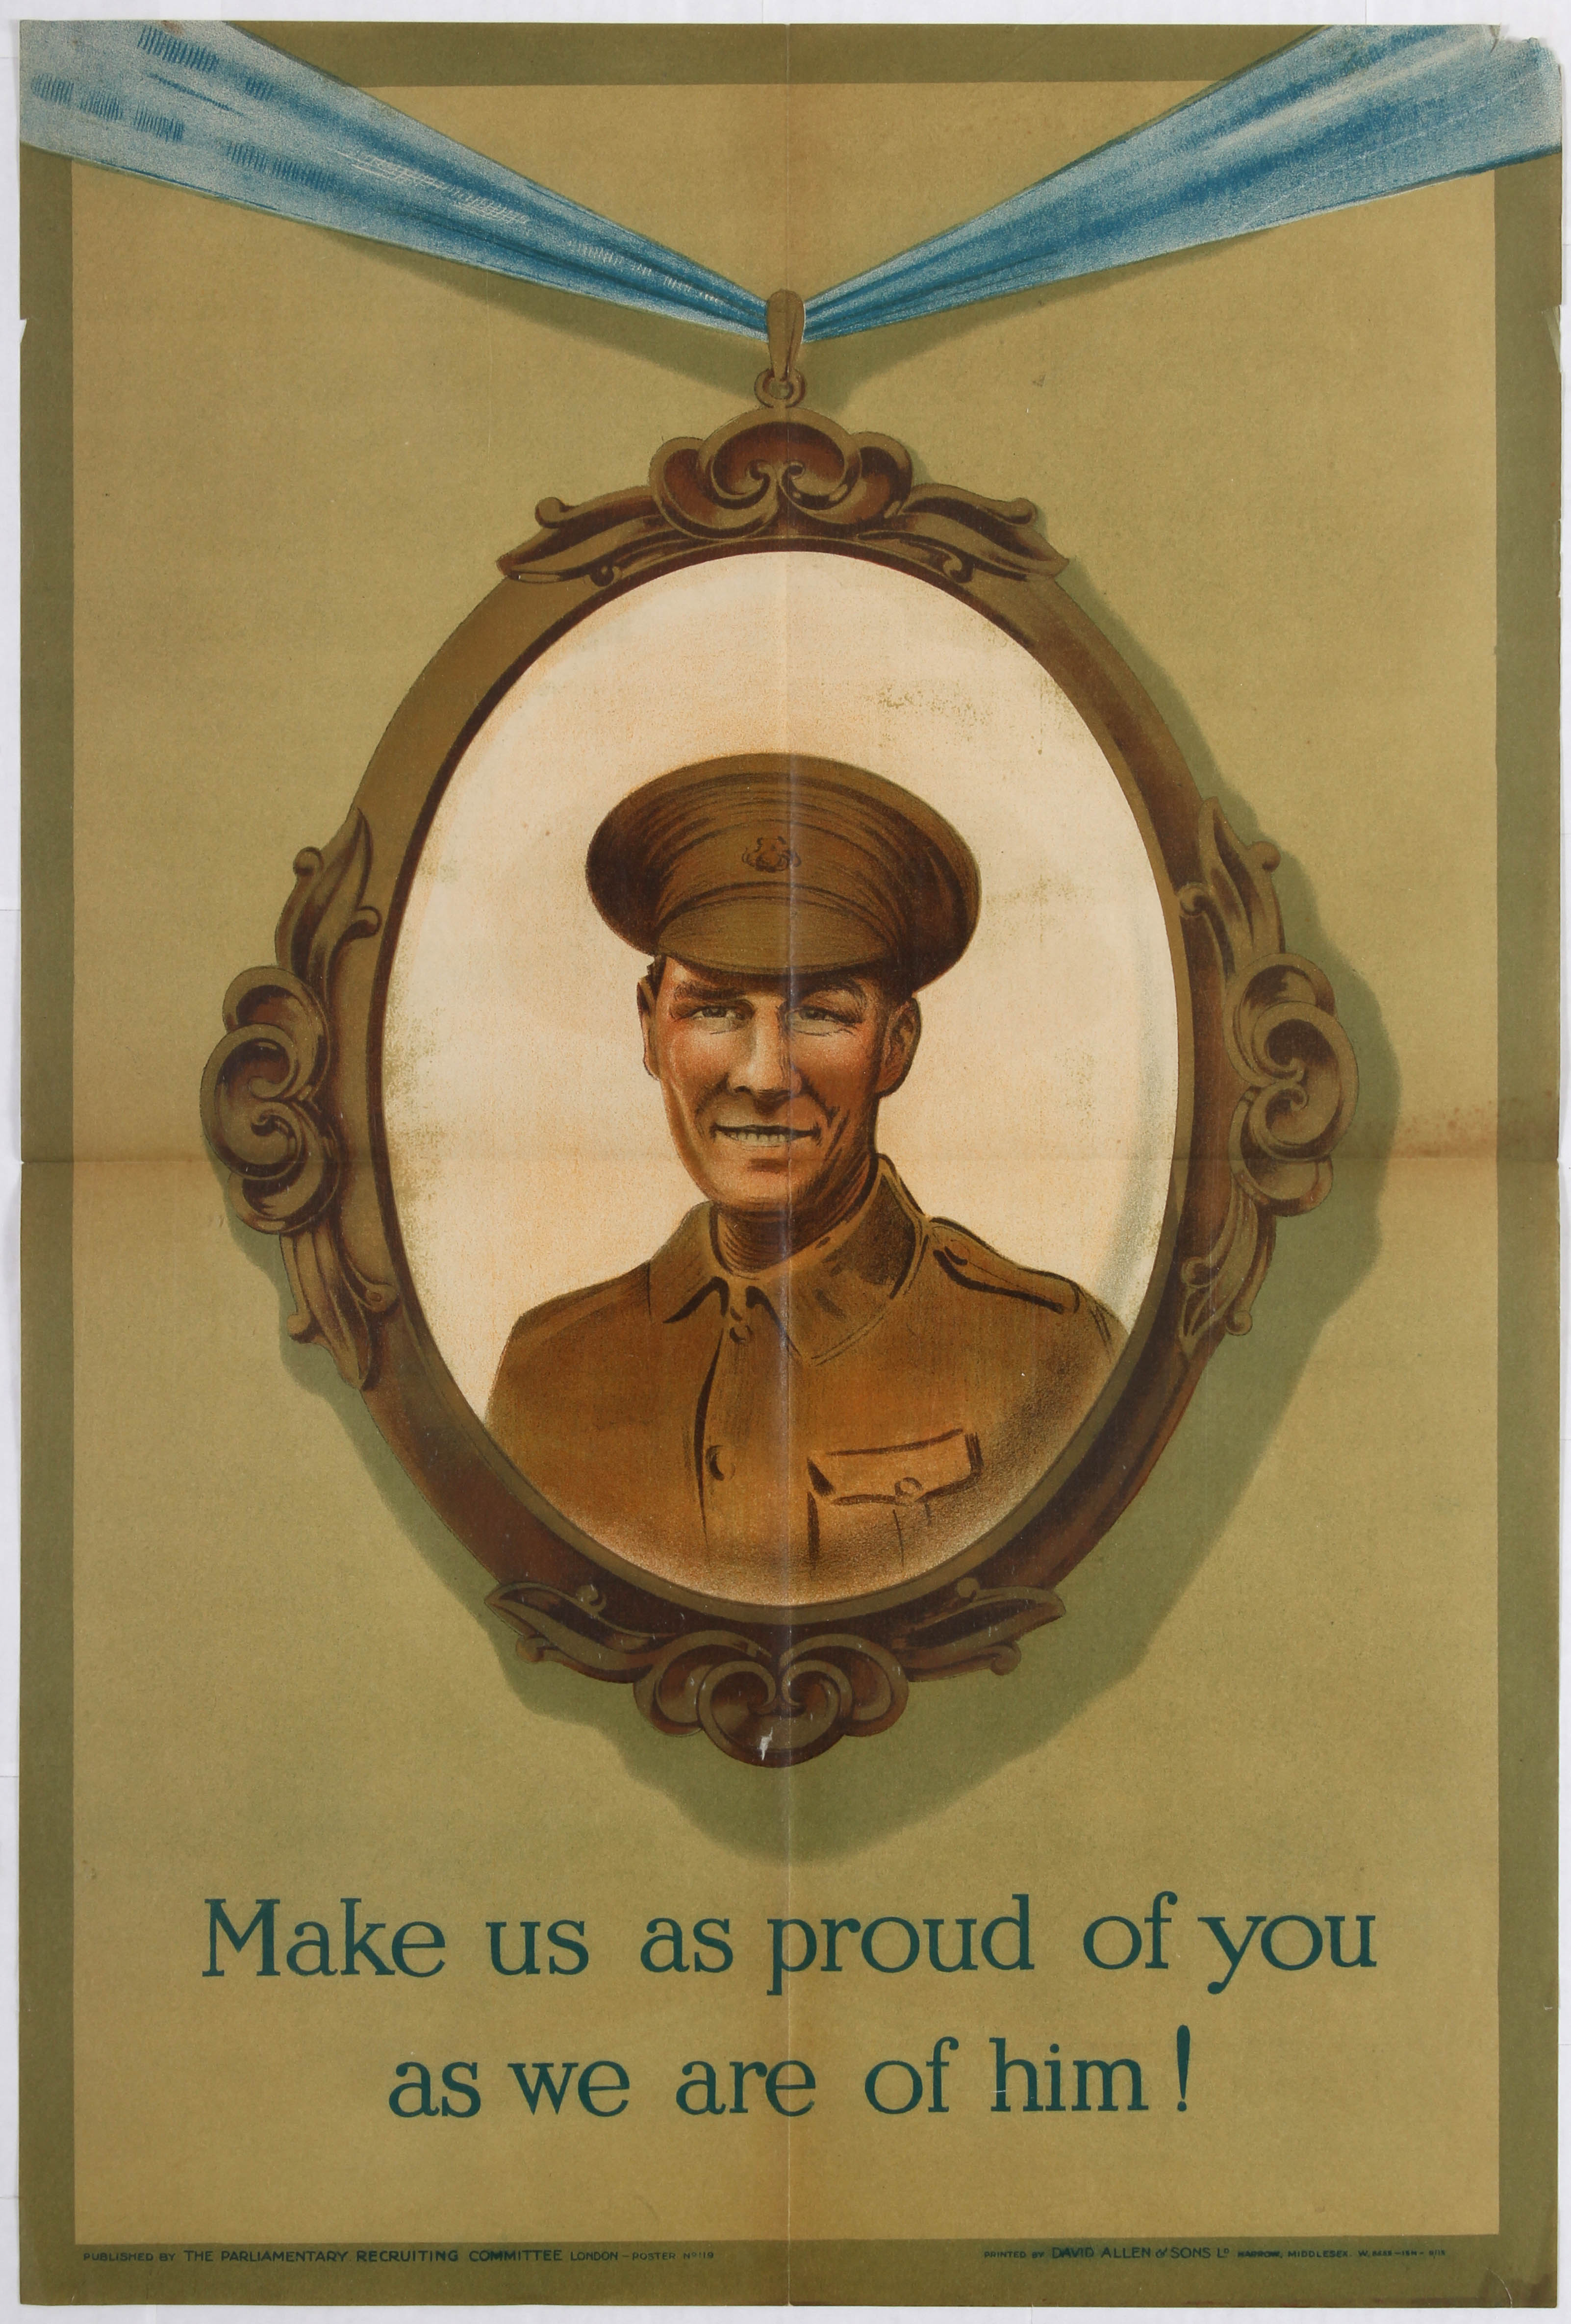 Lot 4109 - War Propaganda WWI poster Make us proud of you as we are proud of him!